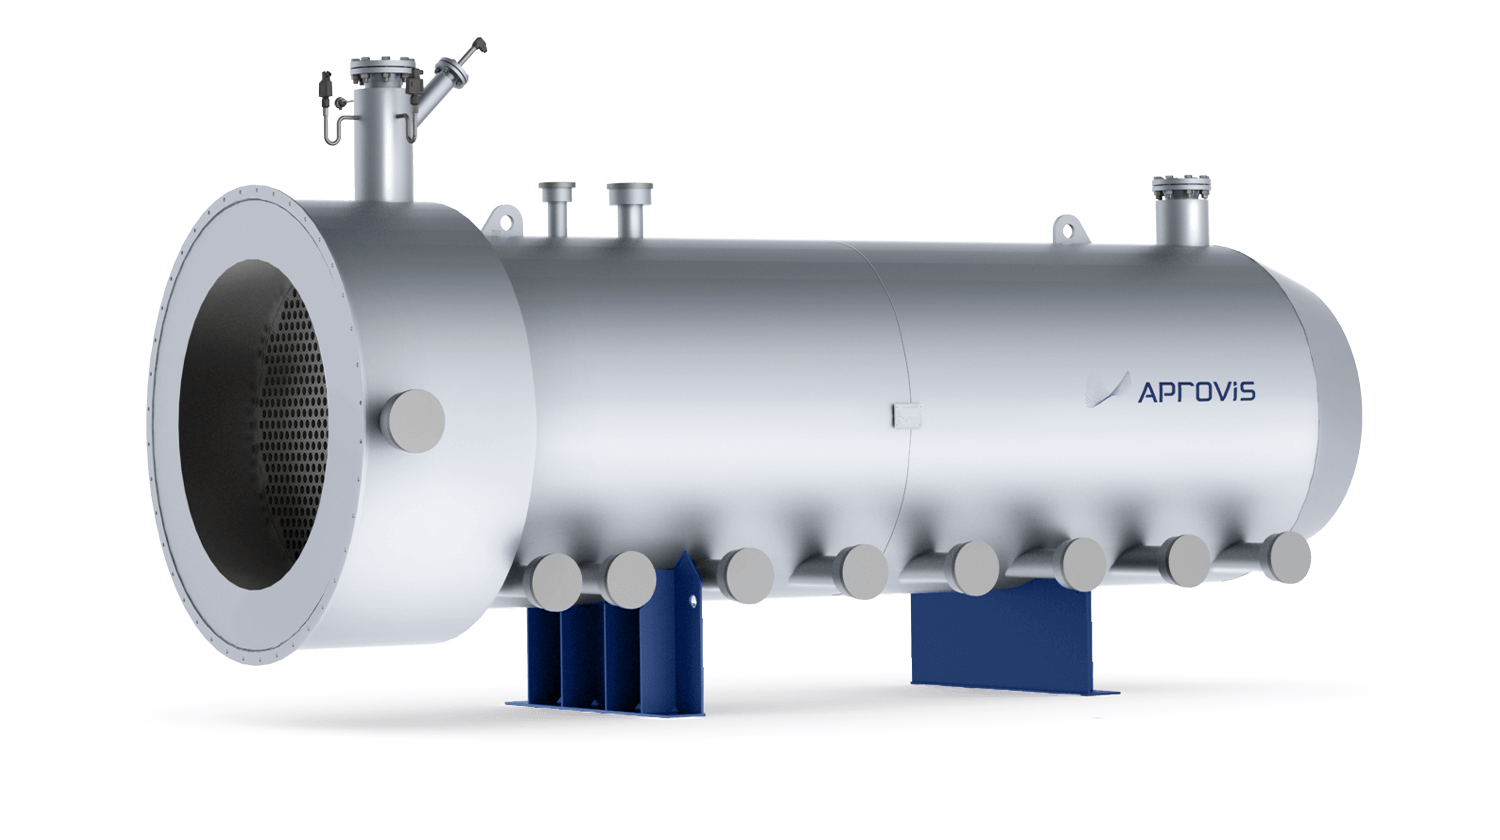 APROVIS high-temperature heat exchangers